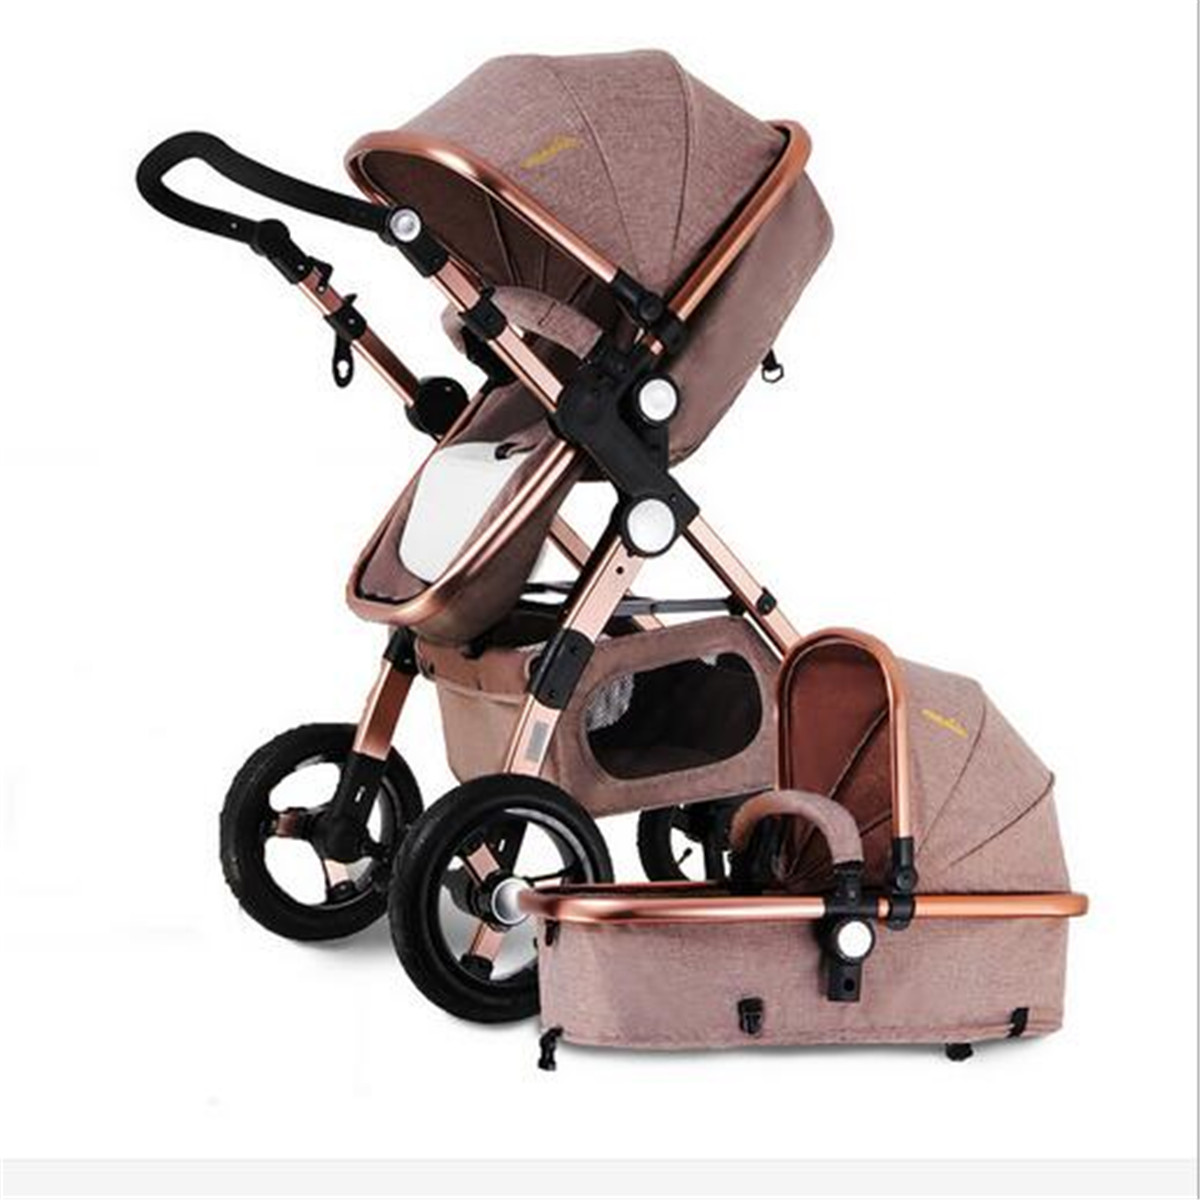 <font><b>3</b></font> <font><b>in</b></font> <font><b>1</b></font> Pro <font><b>Baby</b></font> Stroller High View <font><b>Pram</b></font> Foldable Pushchair Bassinet & Car Seat <font><b>Baby</b></font> High Landscape Cart Can Sit image